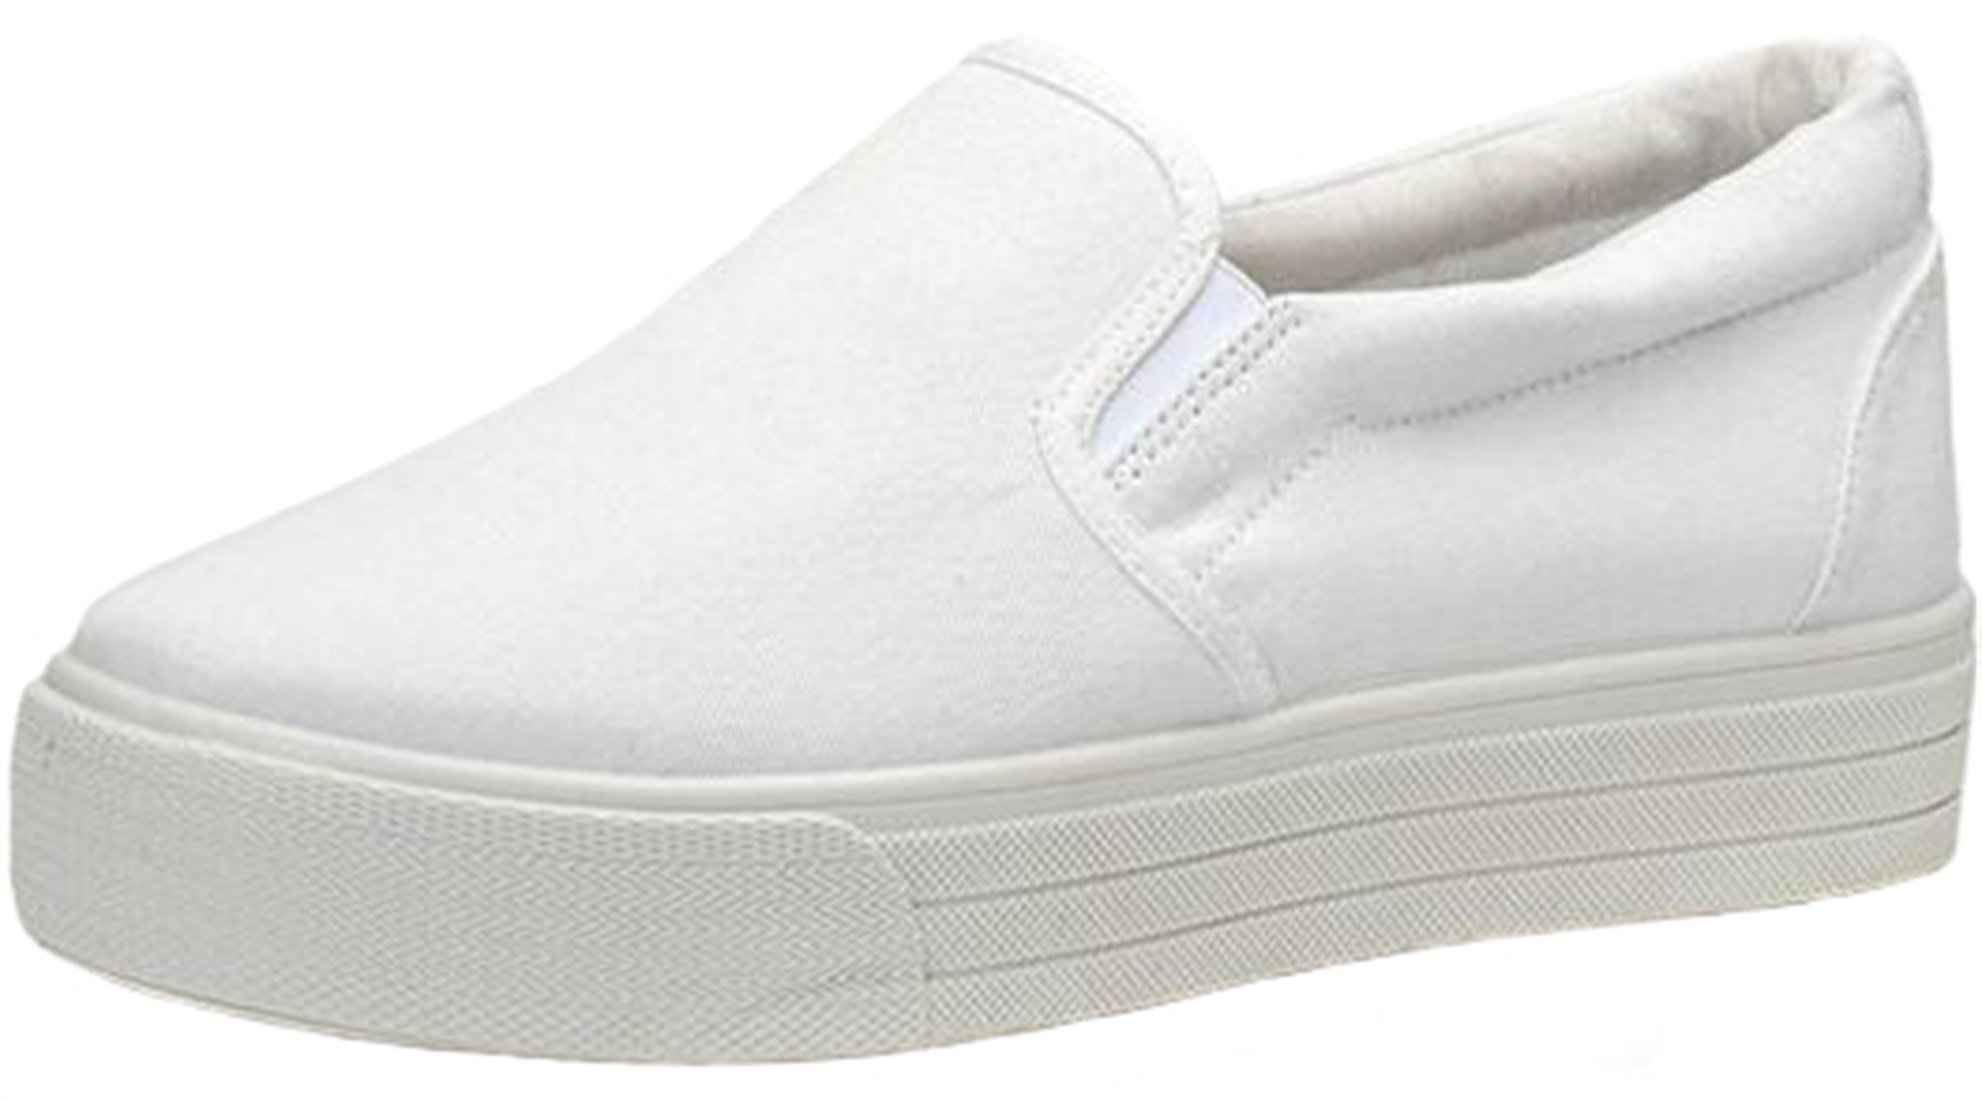 PPXID Women's High Platform Slip On Loafers Casual Canvas Student Shoes-White 7.5 US Size